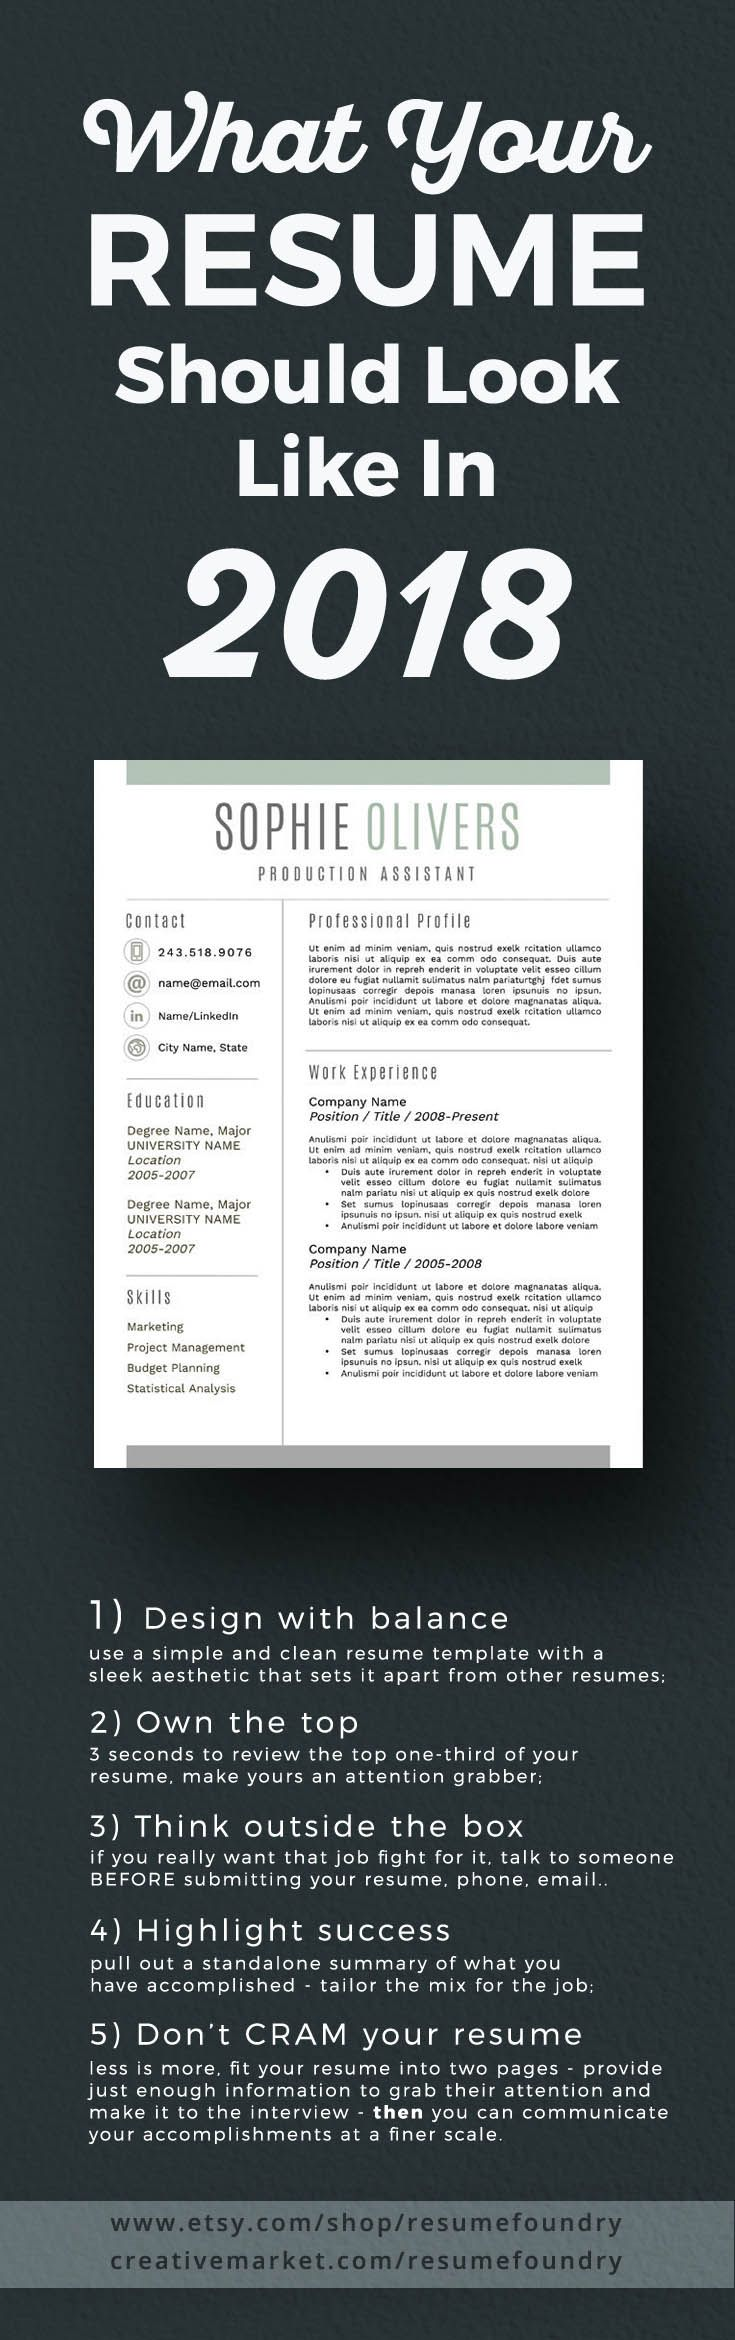 Copy And Paste Cover Letter Amusing Modern Resume Template For Word 13 Page Resume  Cover Letter  .